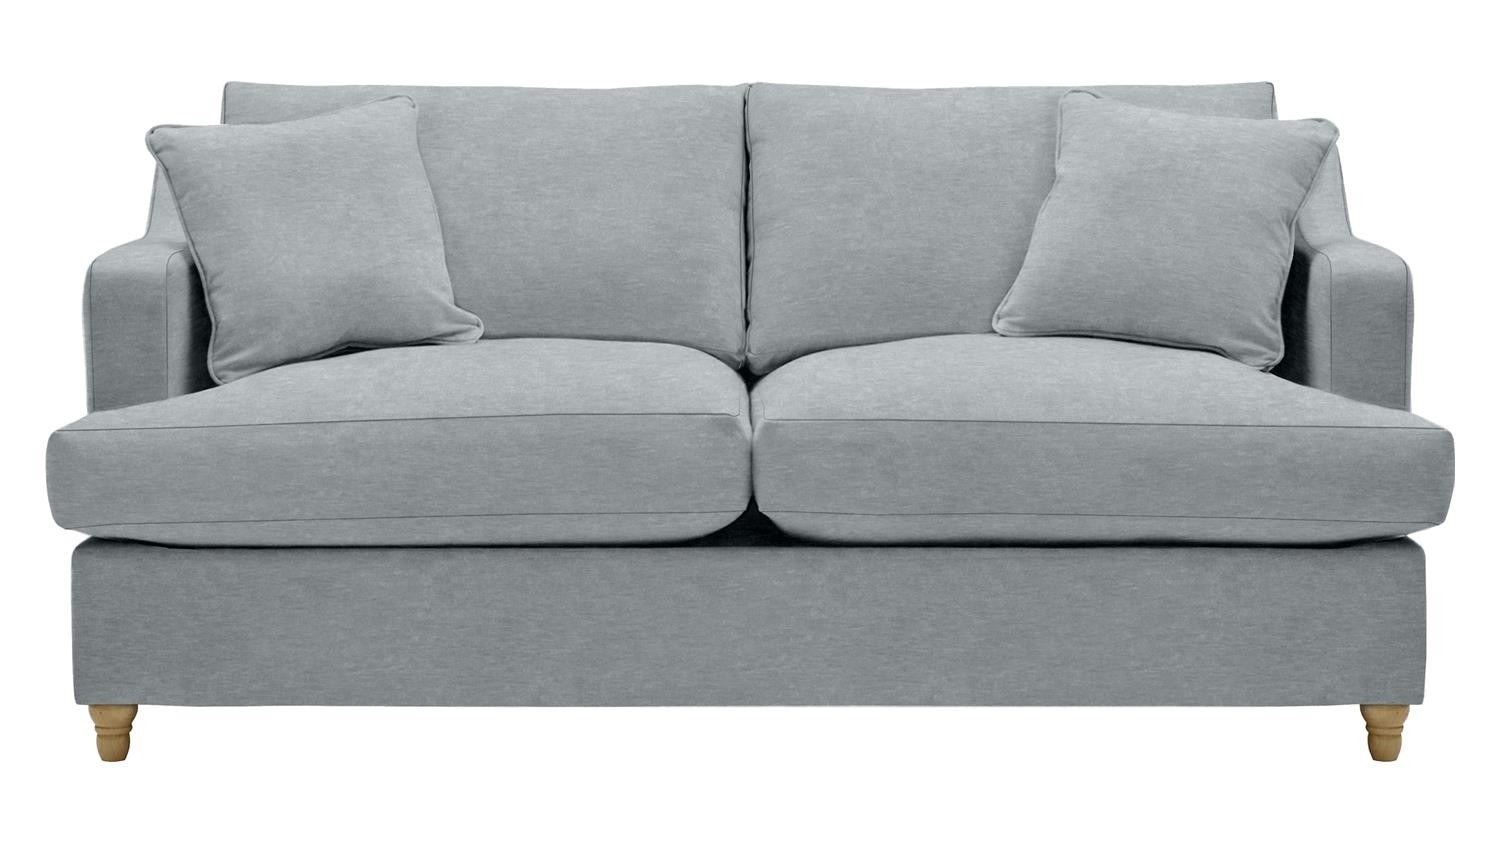 The Atworth 3.5 Seater Sofa